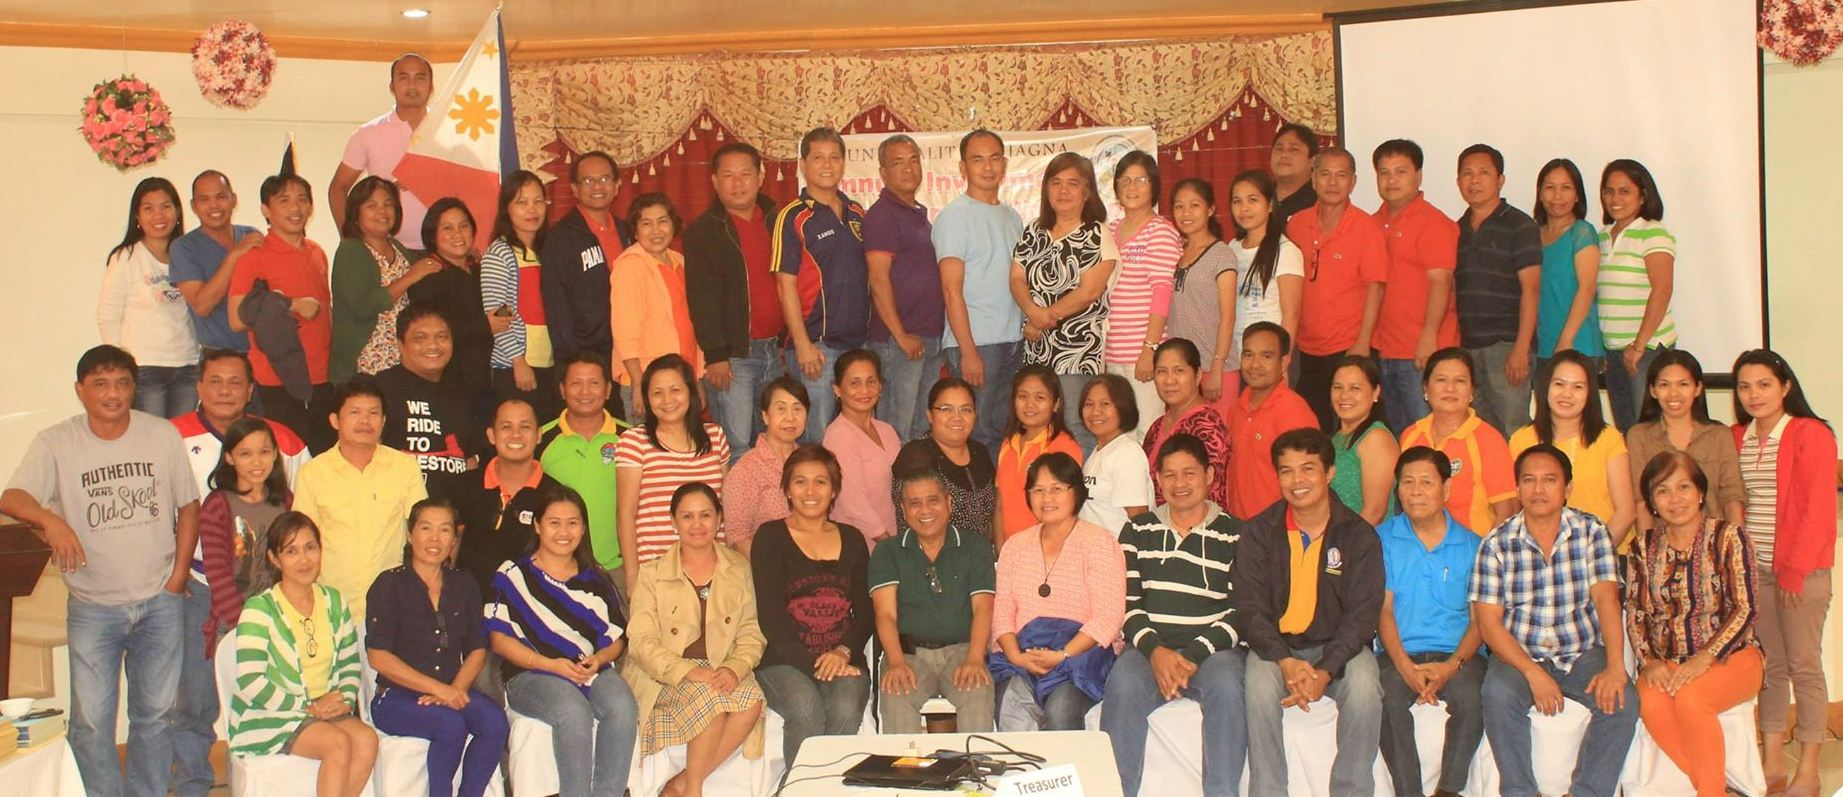 The Local Government Unit of Jagna conducted its Annual Investment Programming for the year 2016 last June 18-19 at Badiang Spring, Anas, Valencia, Bohol. Participated by elected municipal officials, department heads, representative from the civil society organization, national government agencies and employees, it was facilitated by the Municipal Planning and Development Coordinator Engr. Gerry Araneta. The Annual Investment Programming of the municipality is conducted every June to speed up the budgeting process for early compliance as to annual budget submission in the province.